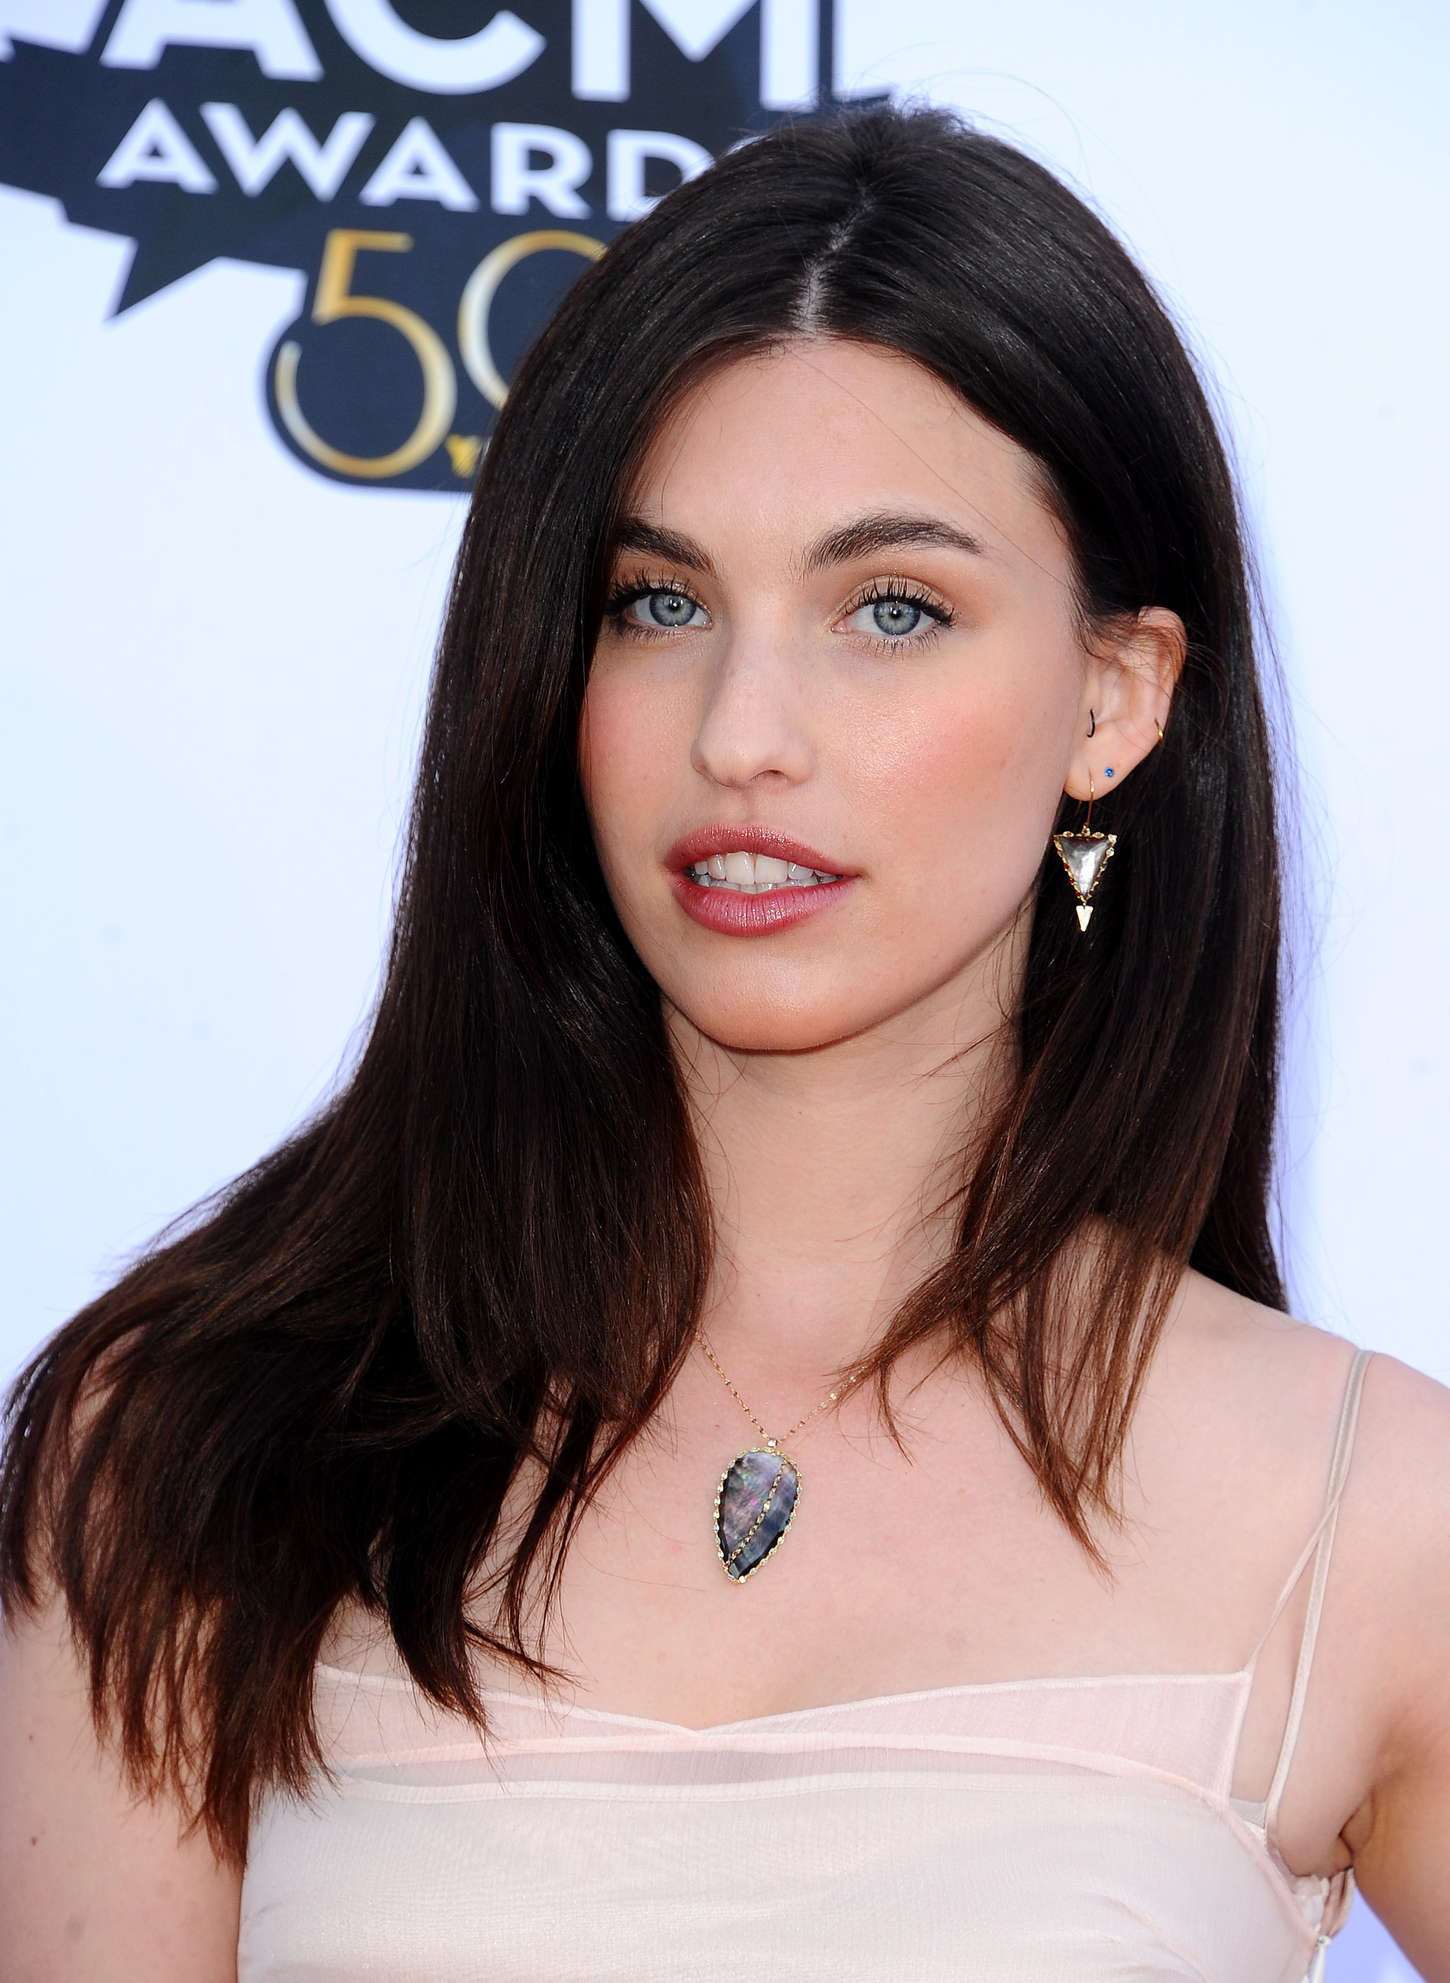 Pics Rainey Qualley naked (58 photo), Tits, Leaked, Selfie, cleavage 2015